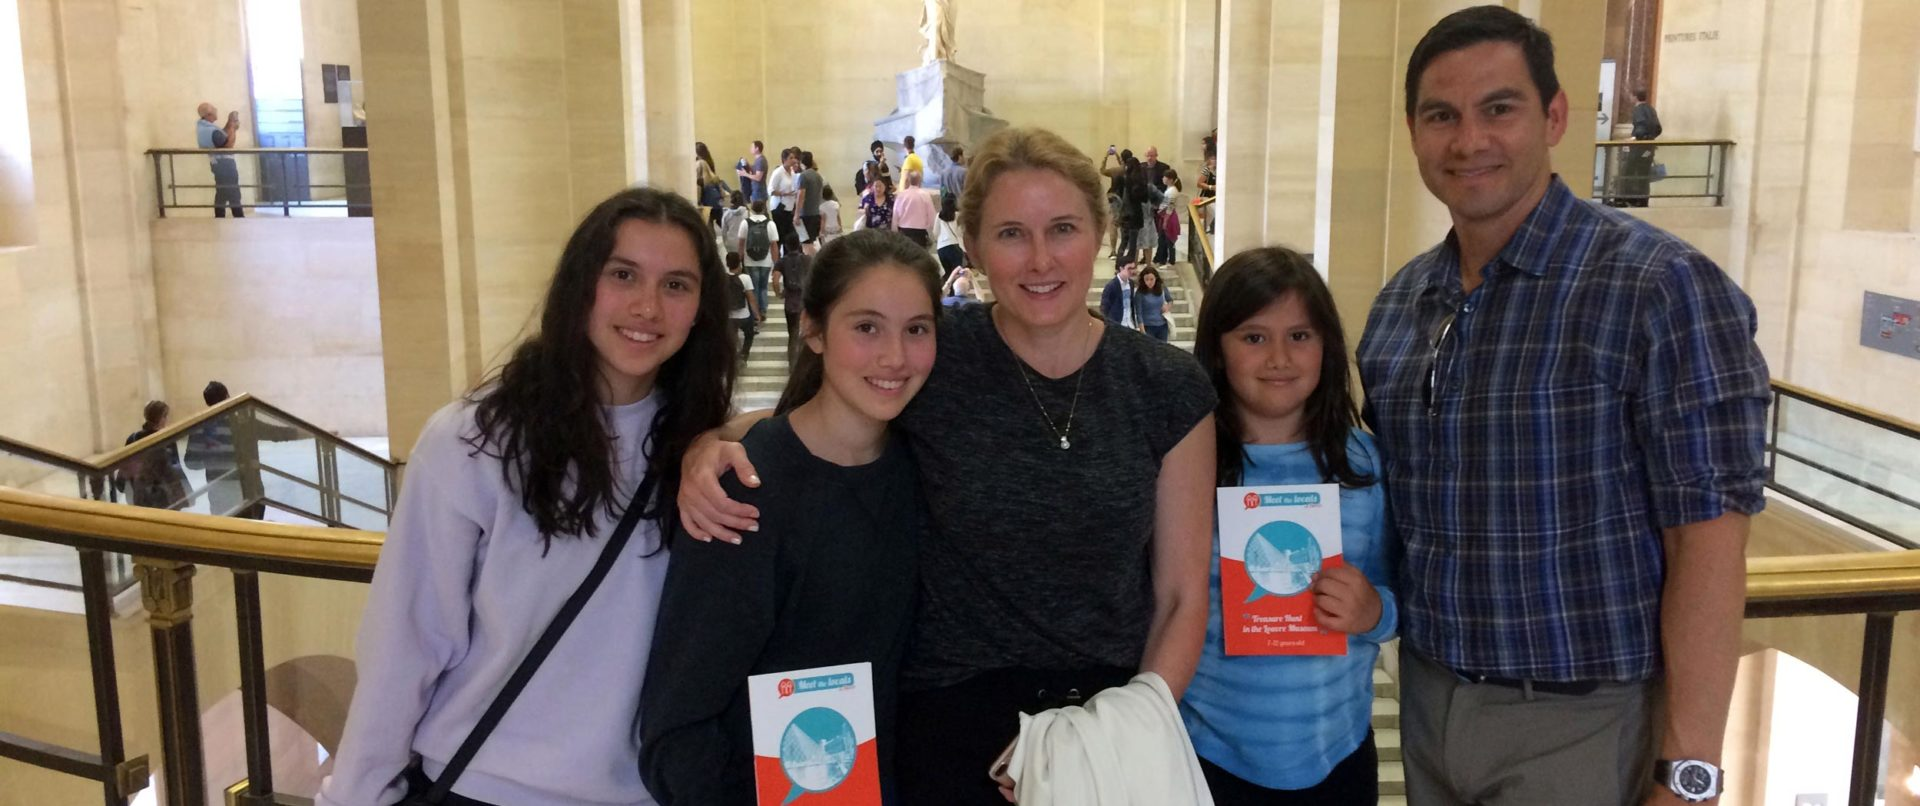 louvre-for-kids-family-experience-in-paris